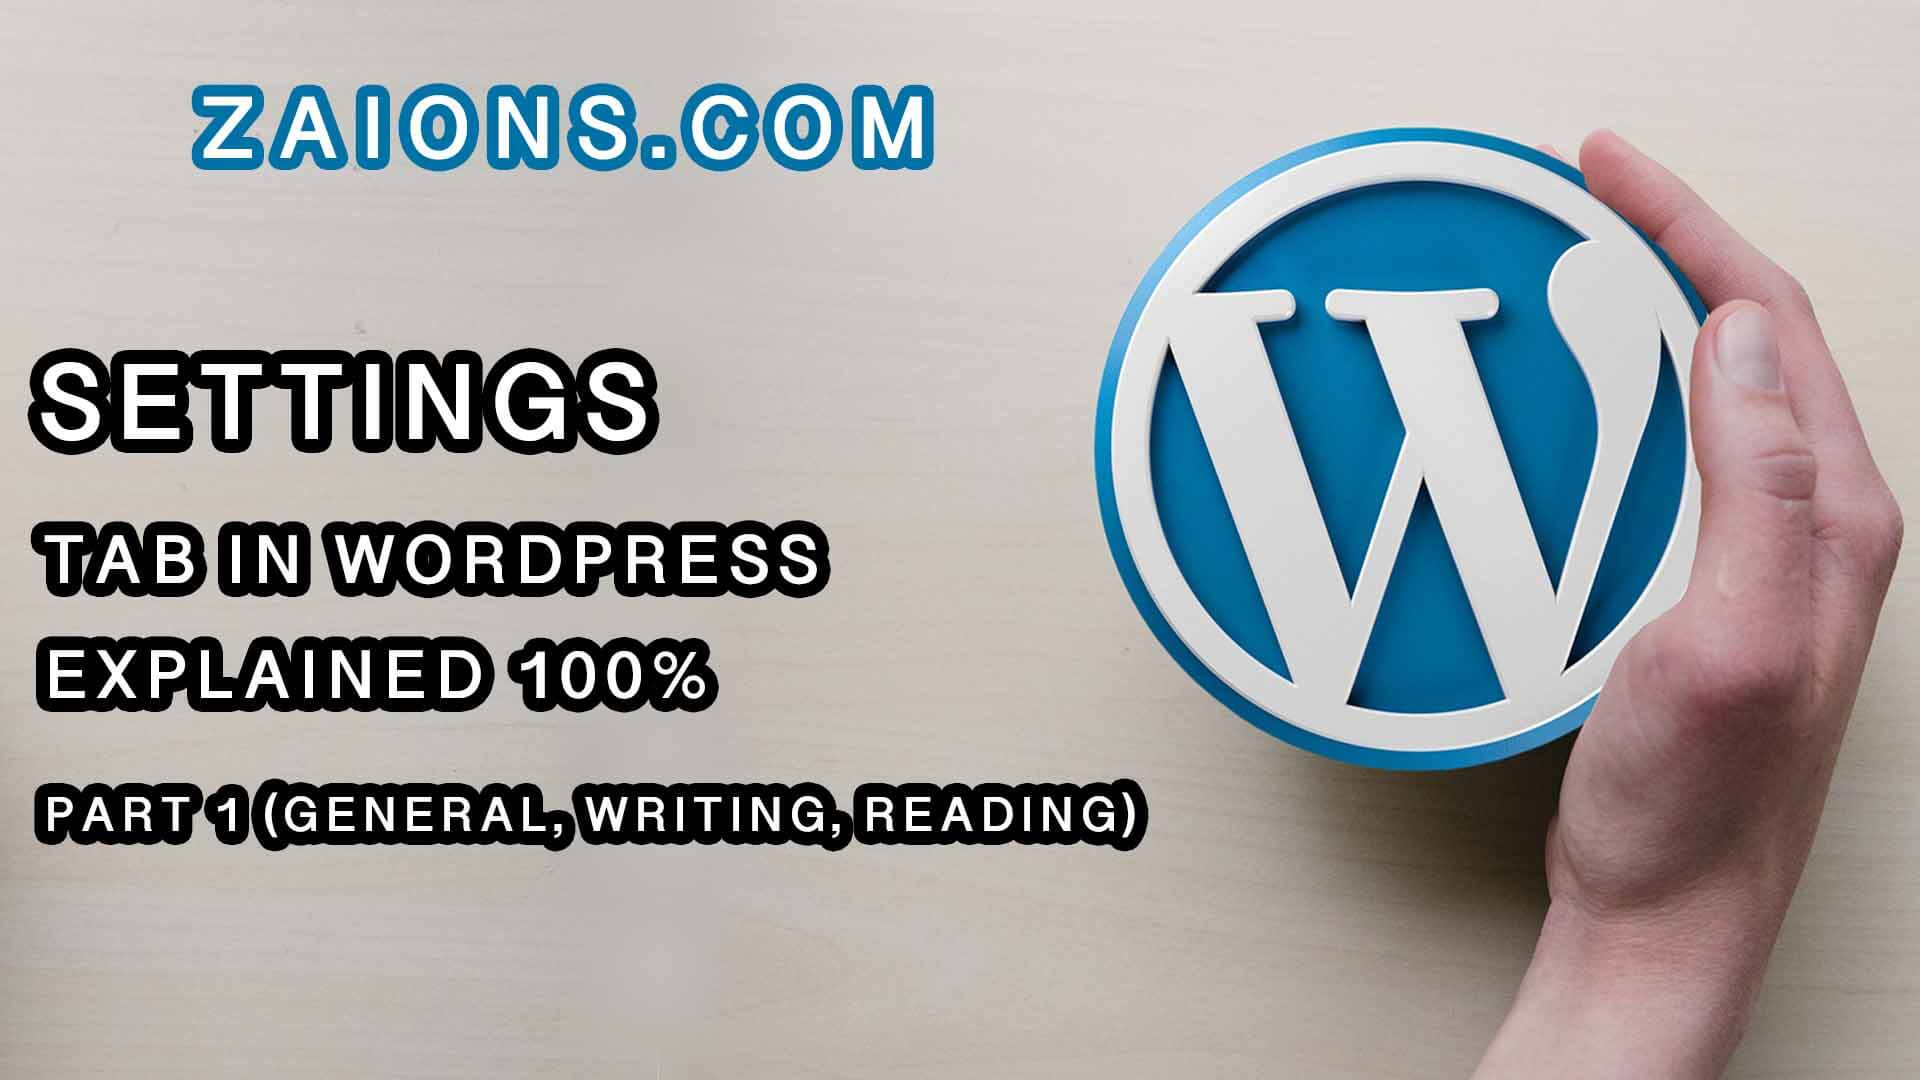 w-Settings Tab & its Sub-Options (General, Writing, Reading) in WordPress, Explained for Beginners